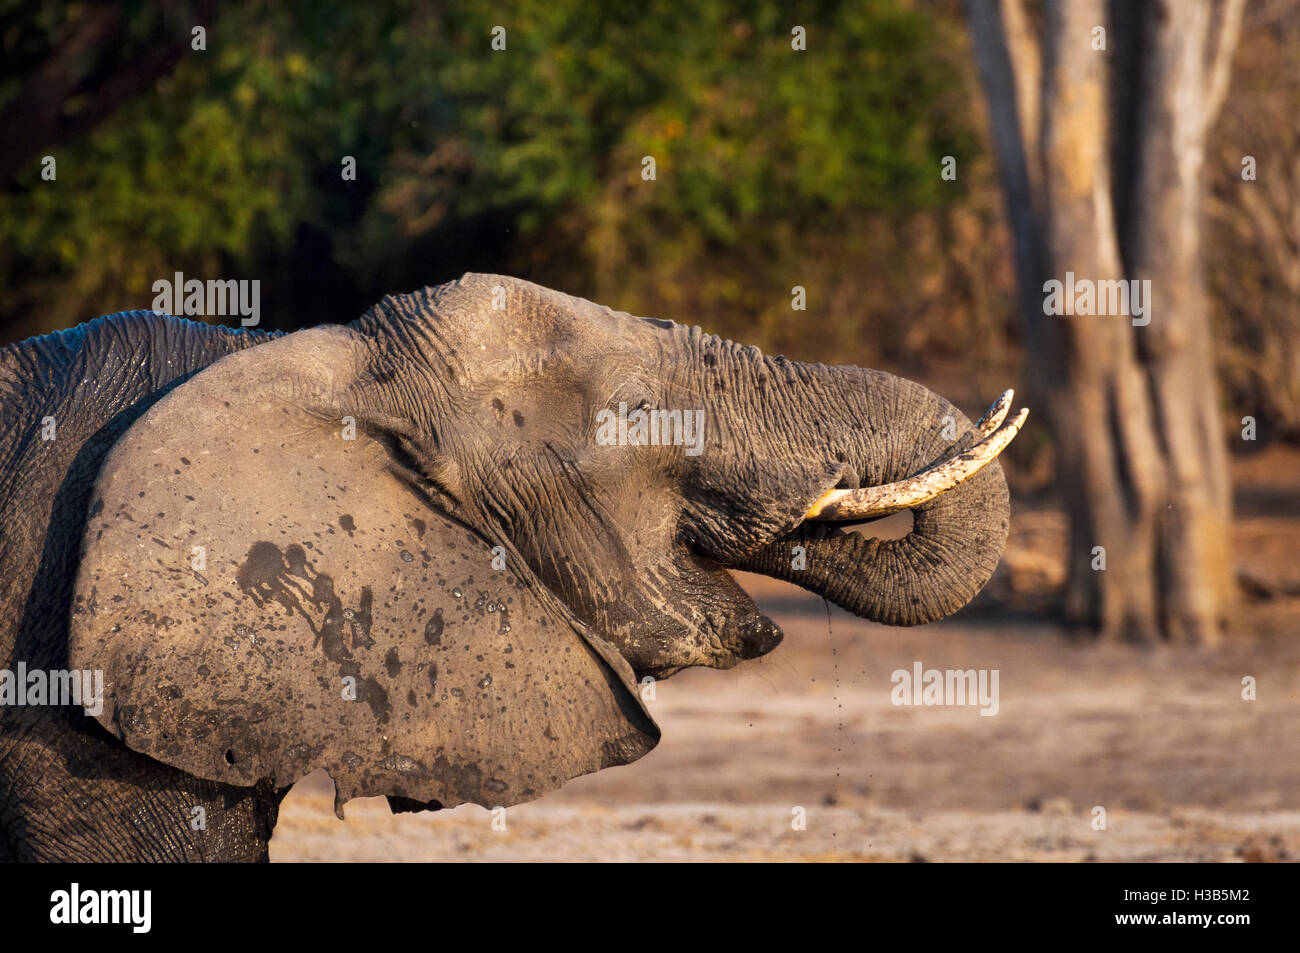 Elephant drinking water in the Chobe River, Chobe National Park, in Botswana, Africa - Stock Image